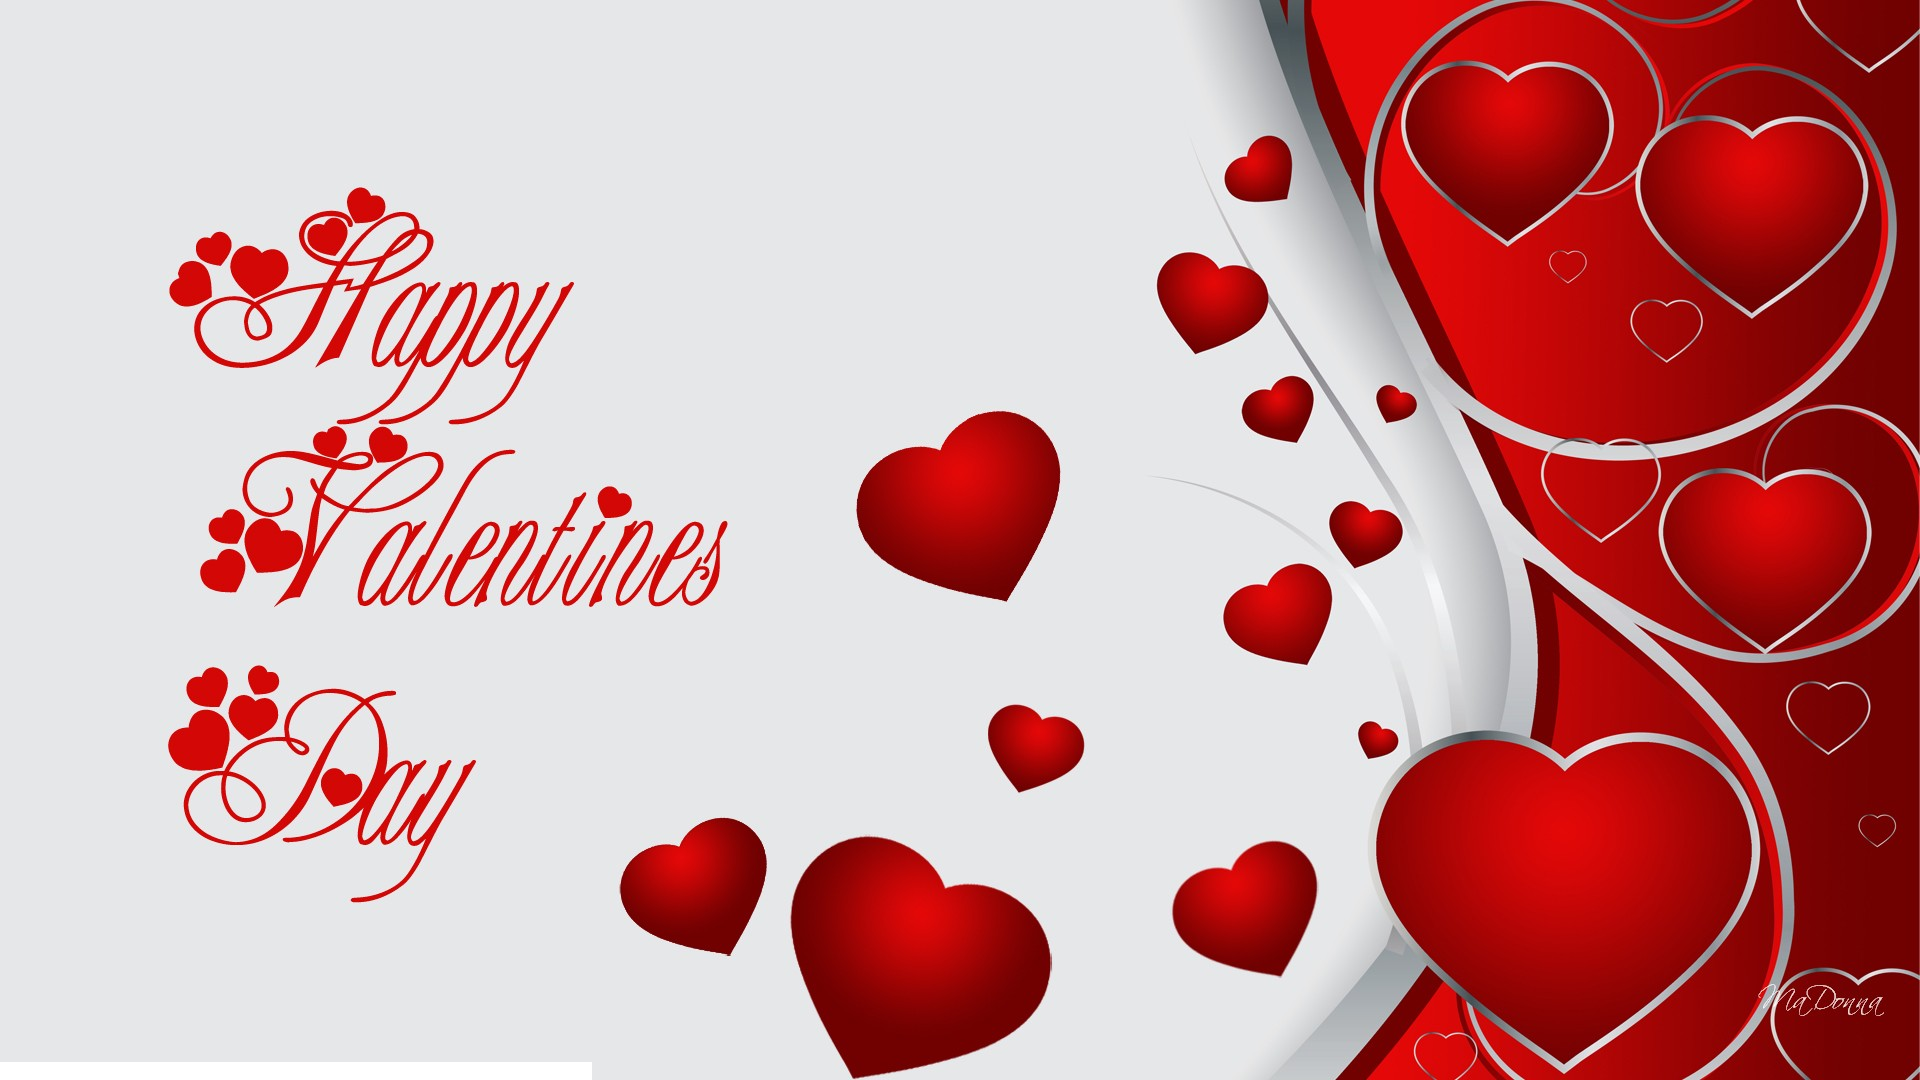 10 Best Valentine S Day Pc Wallpapers To Make The Mood Romantic